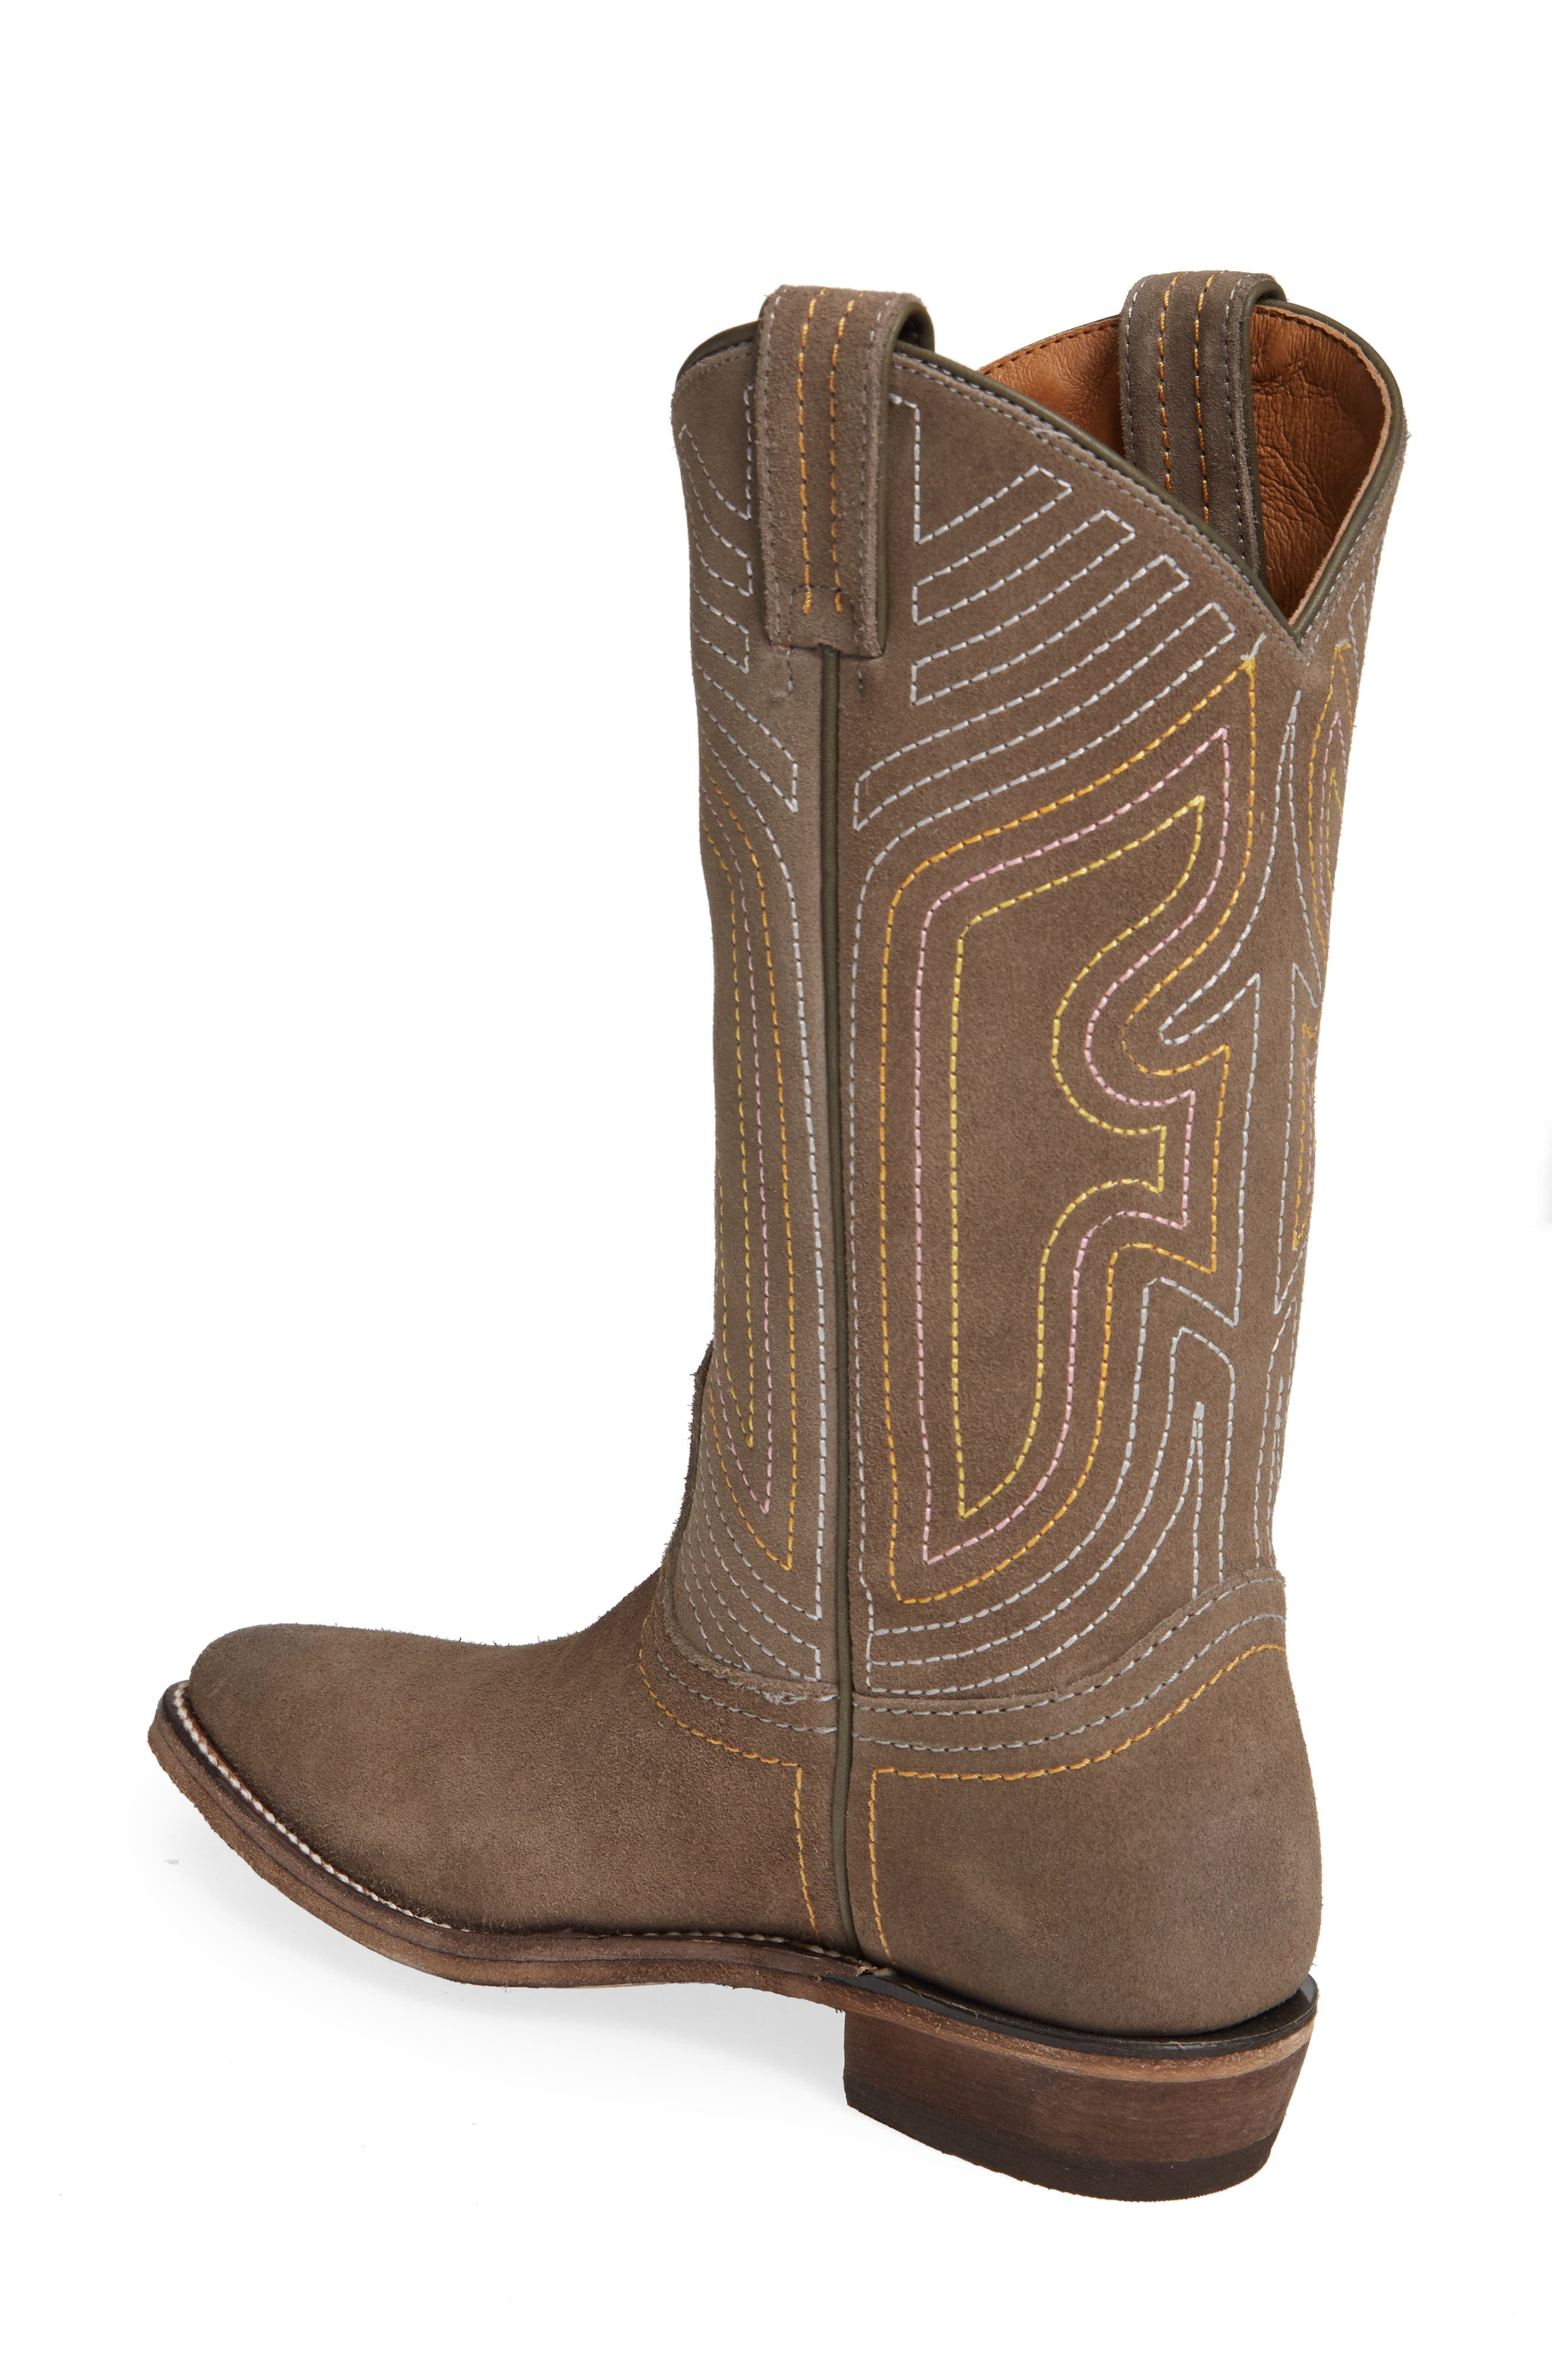 e3444a15db2 Women s Pointy Toe Boots